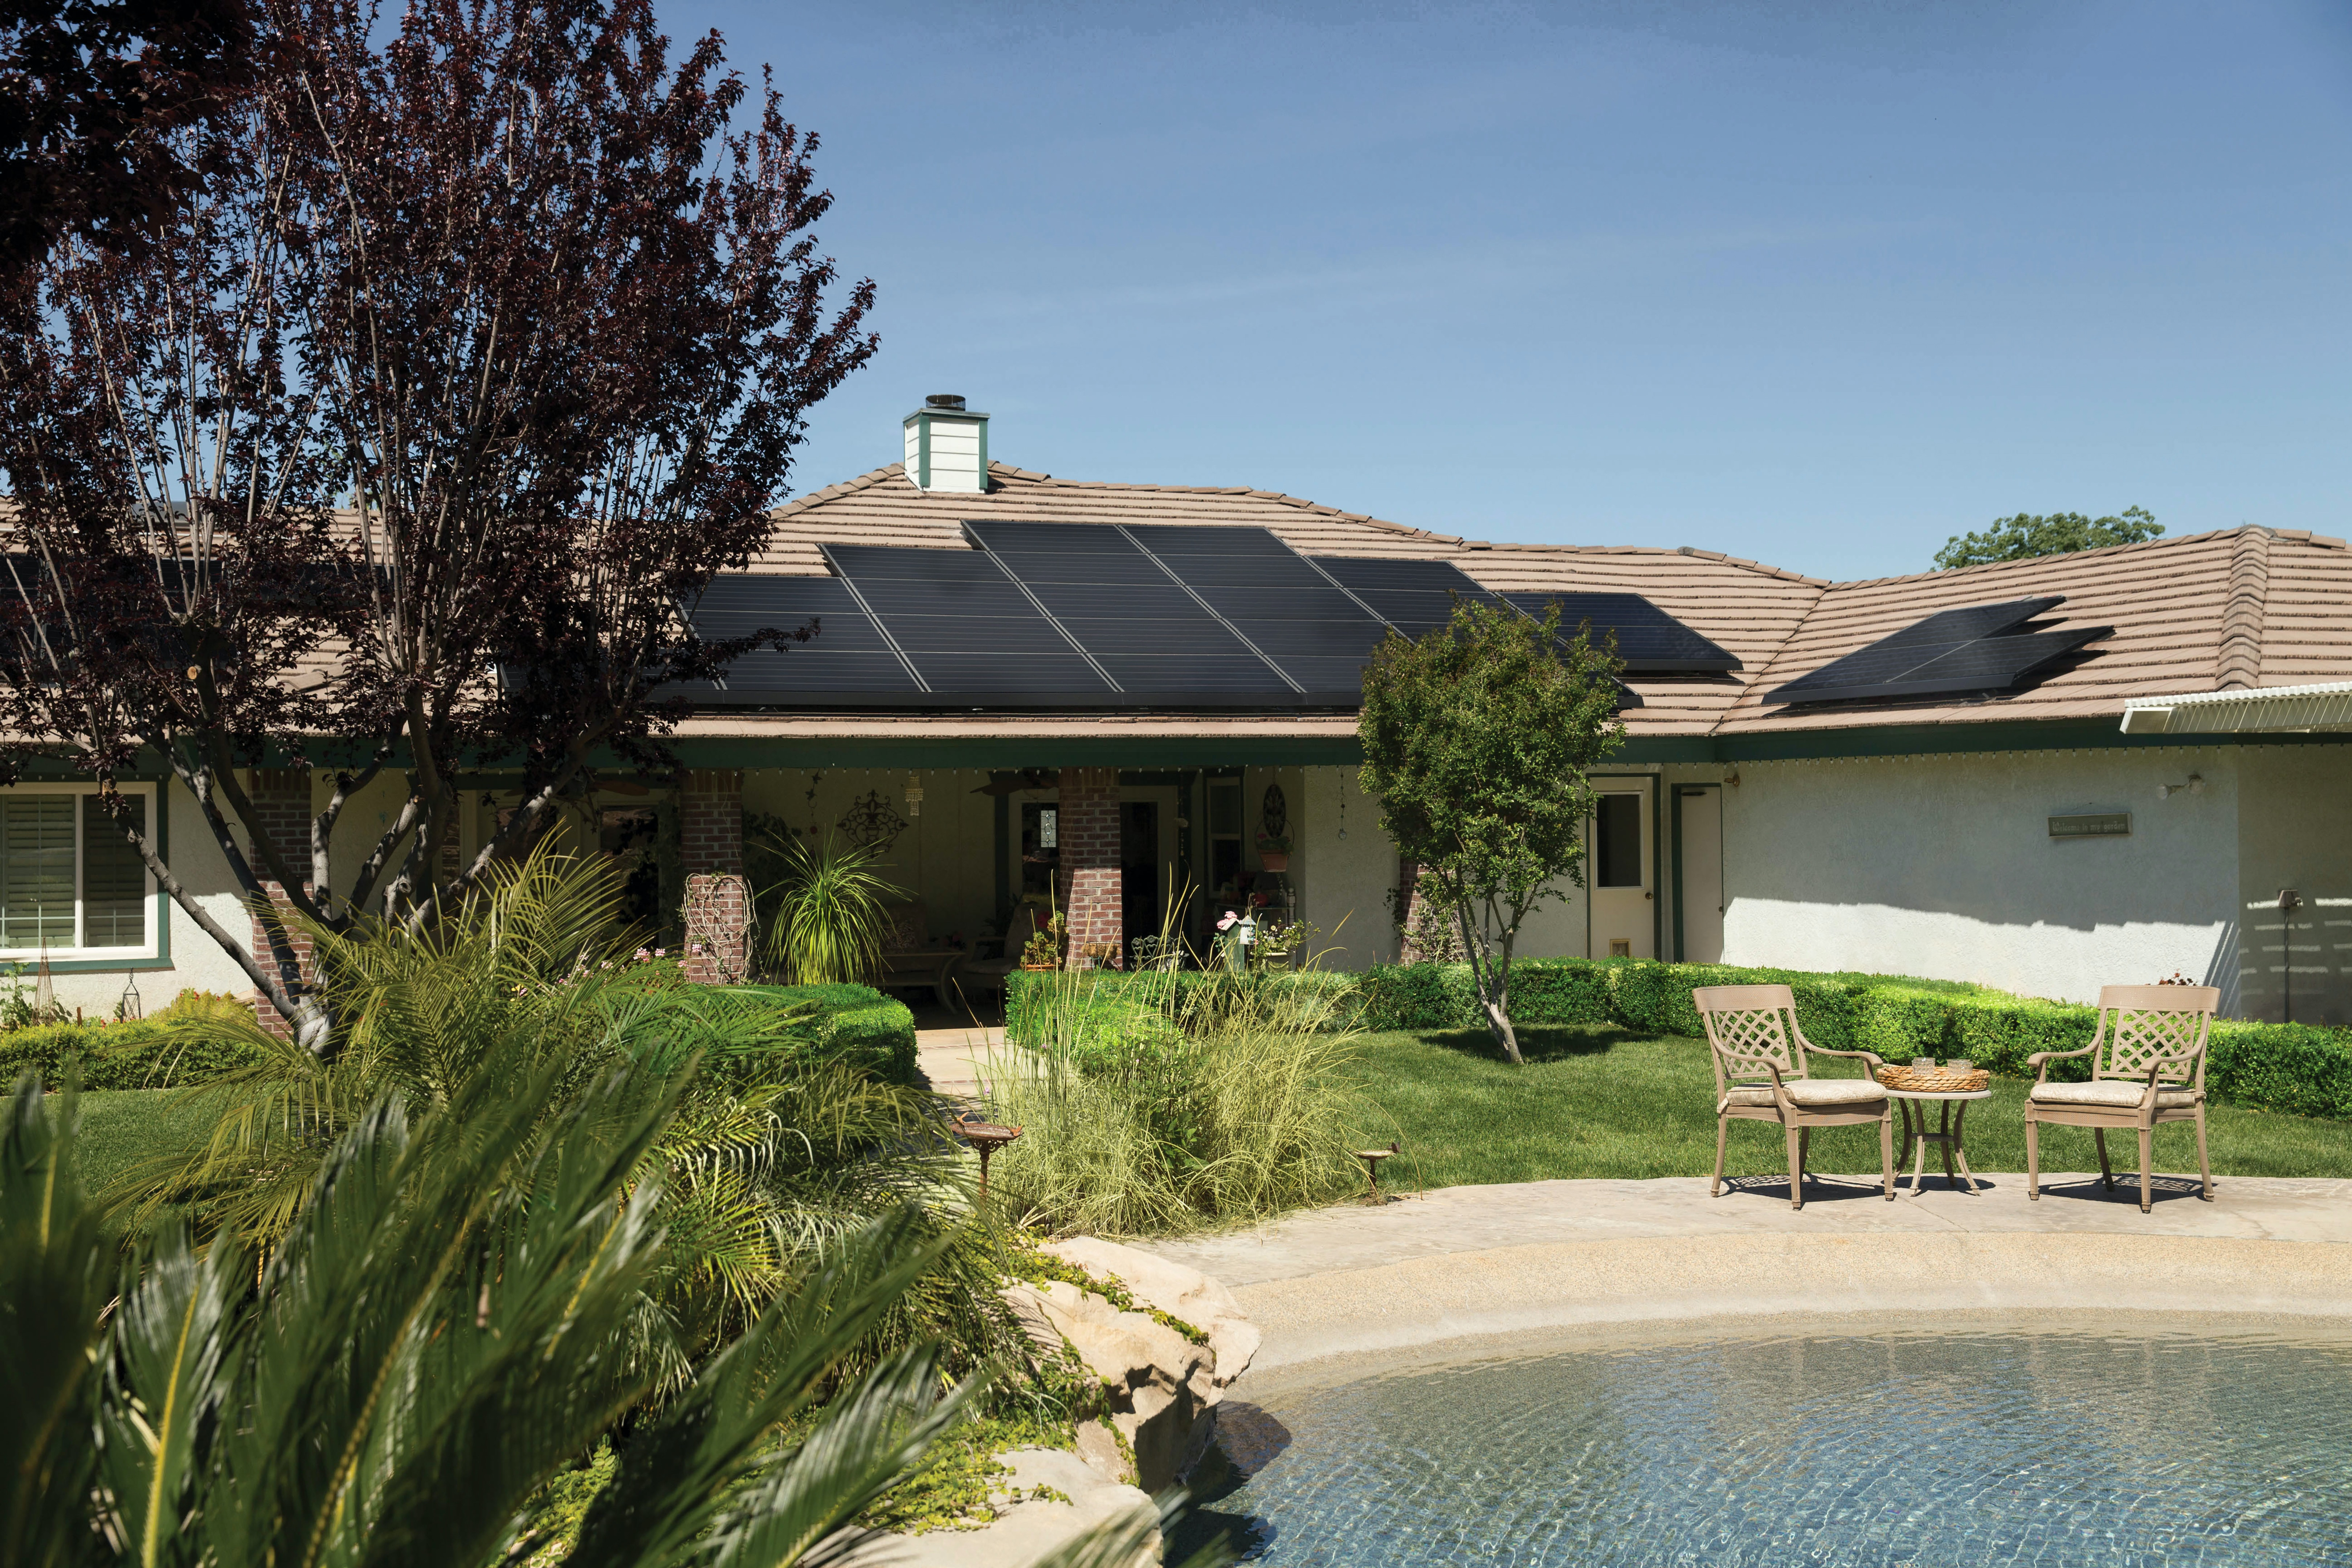 8 Ways To Make Your Home Energy-efficient